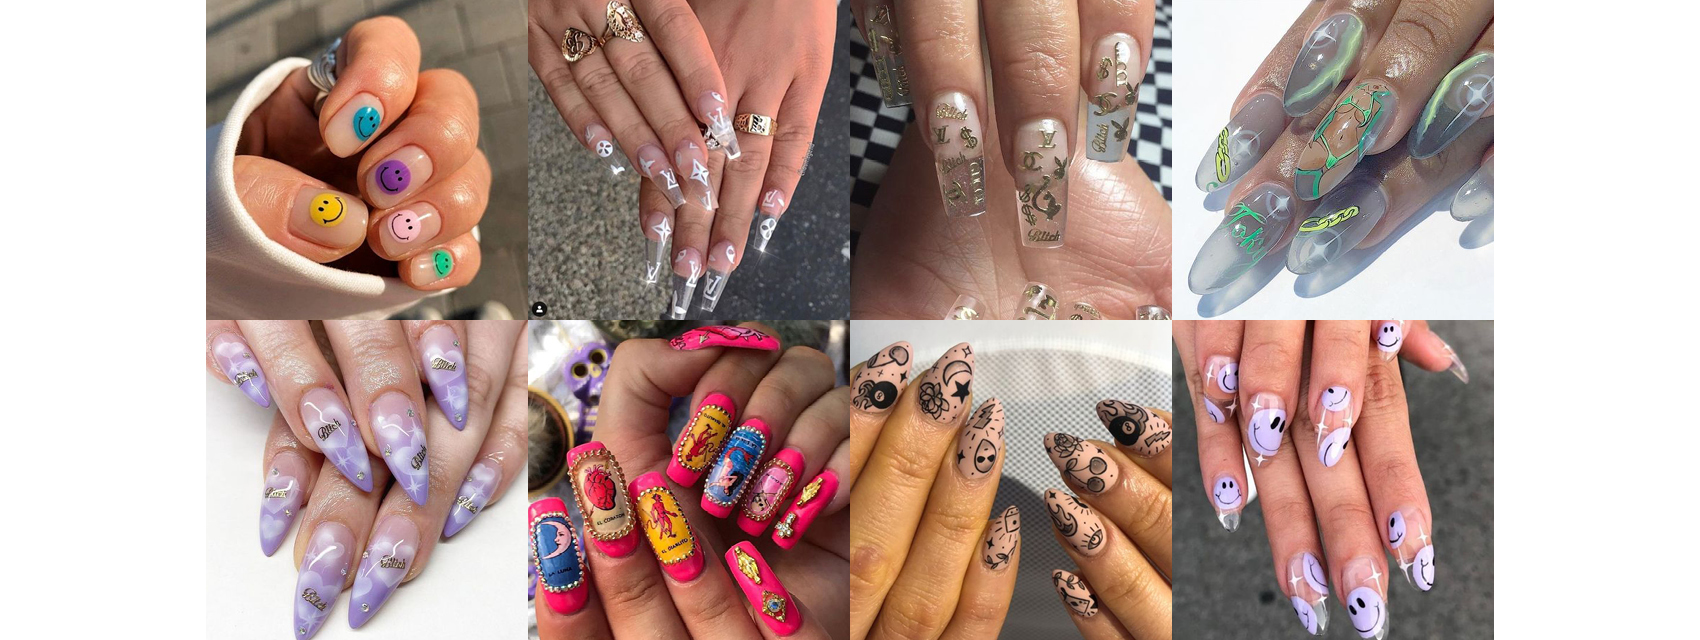 Apply Nail Stickers Like A Pro With These 4 Easy Steps How To Apply Nail Stickers Like A Pro